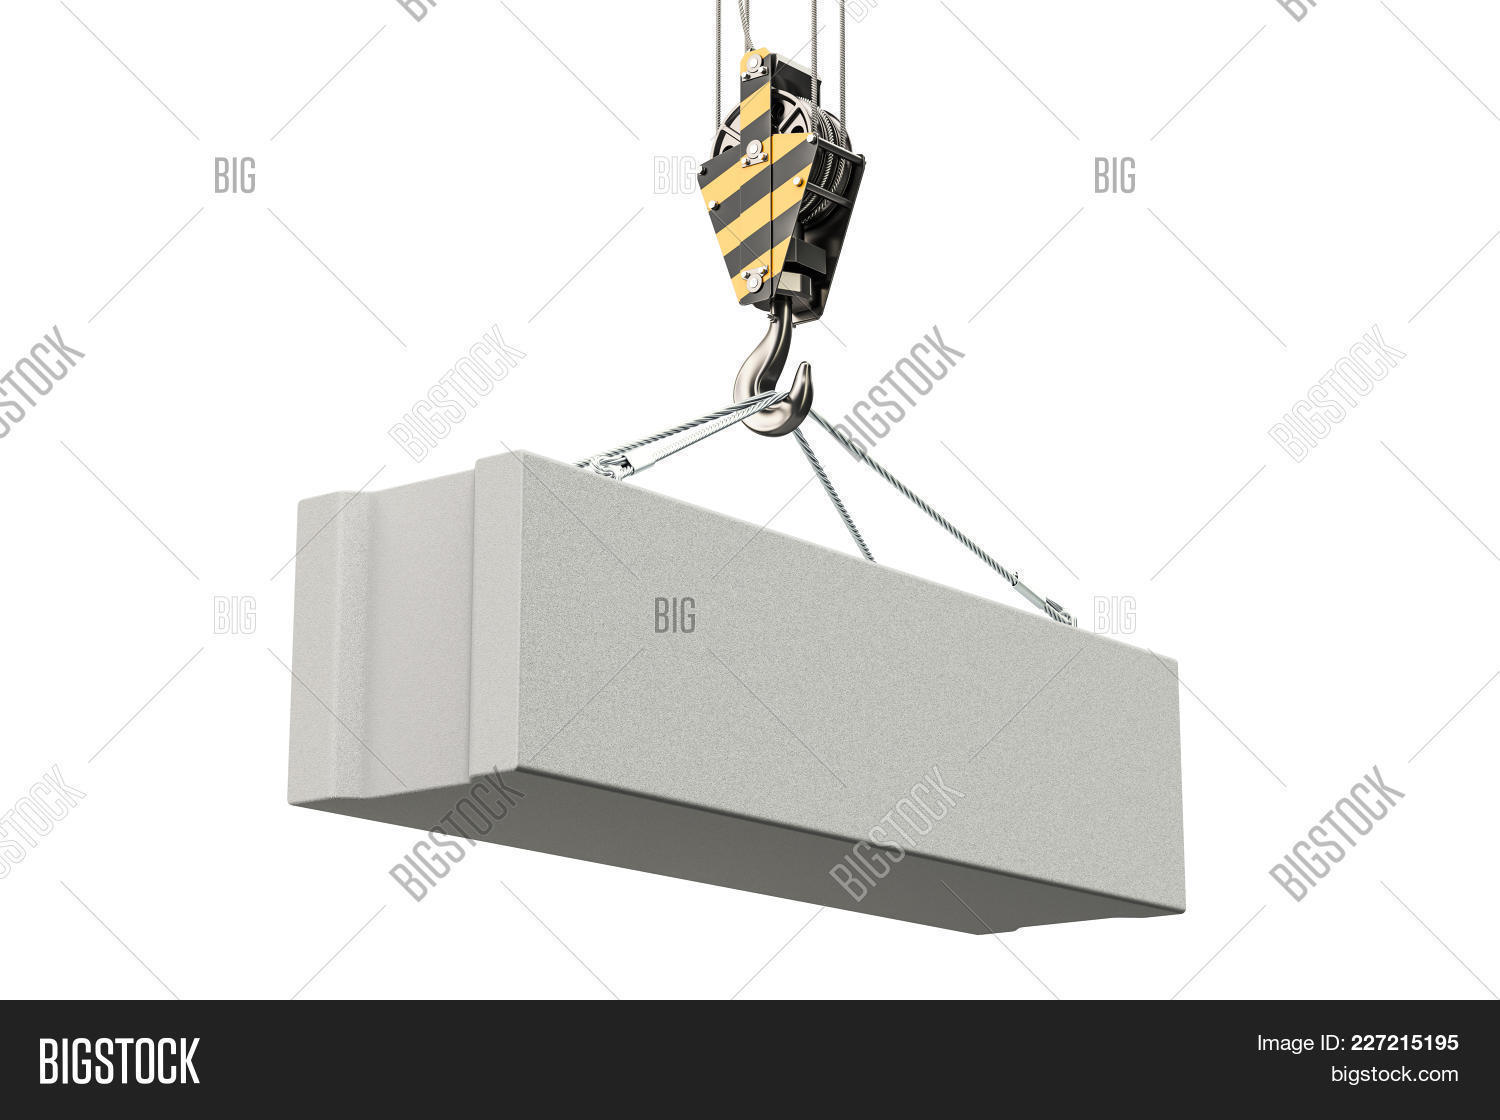 hight resolution of crane hook with foundation concrete block 3d rendering isolated on white background